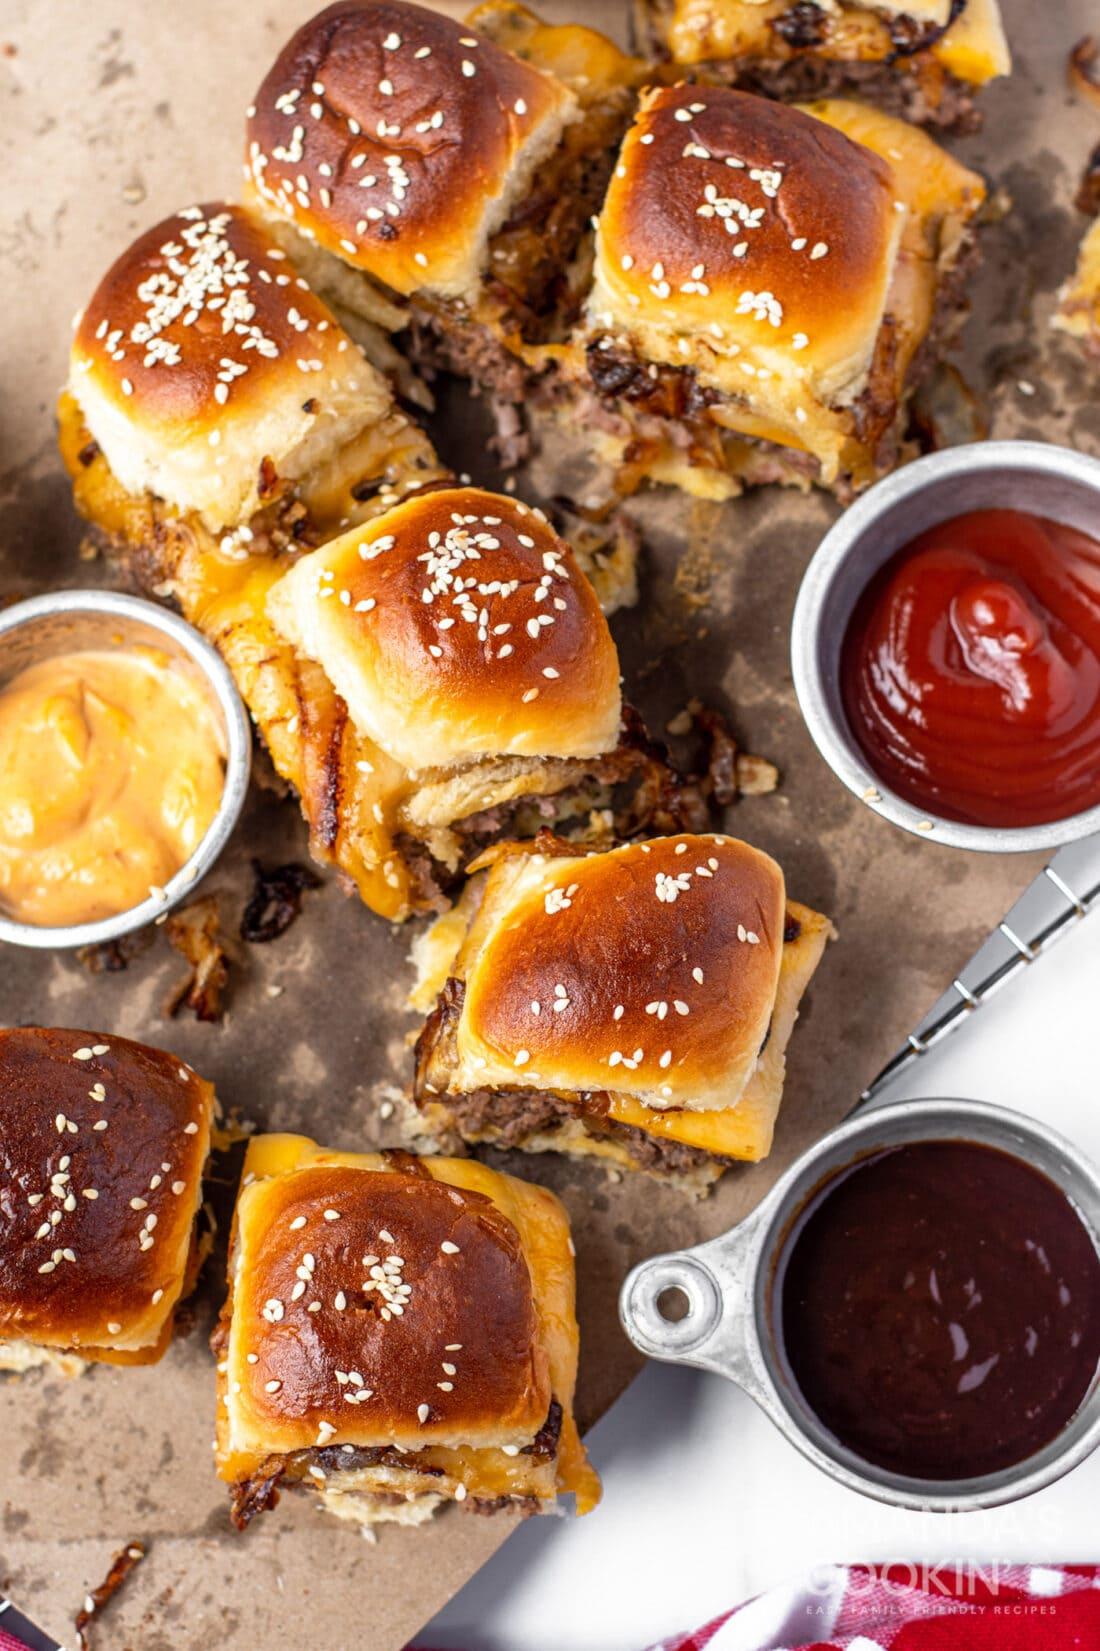 overhead view of cheeseburger sliders